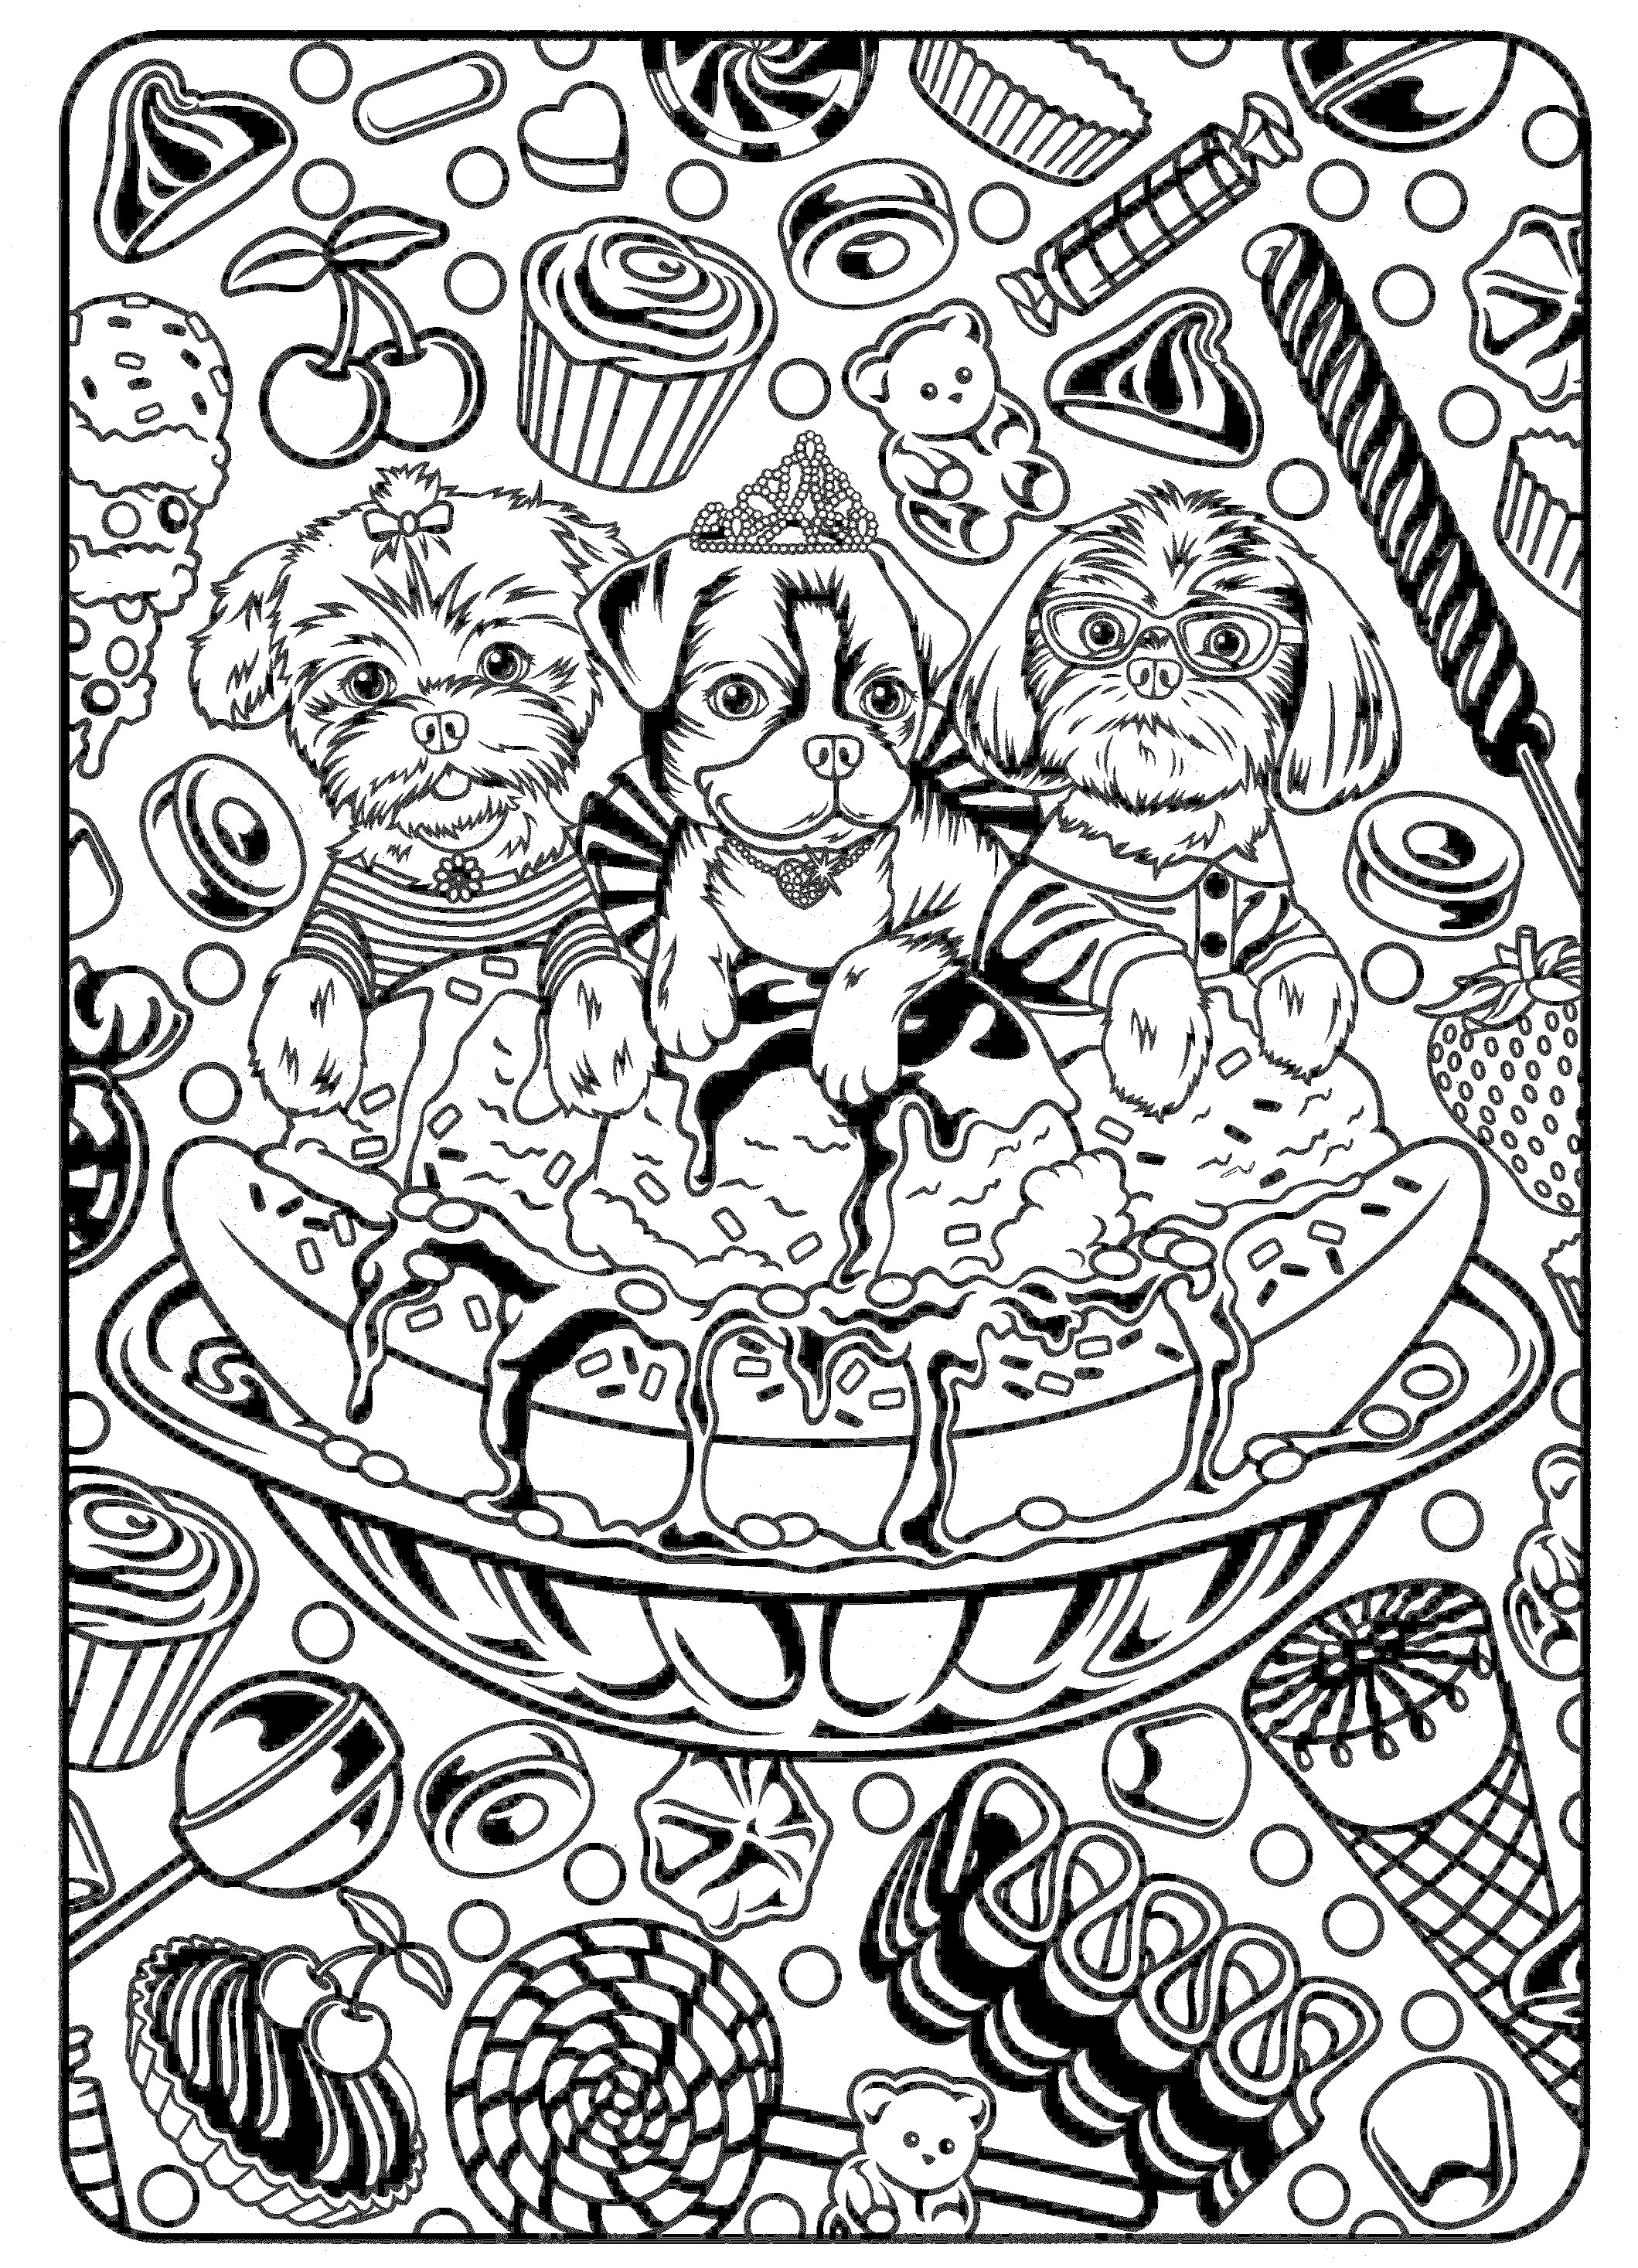 coloring pages free free easy to print pig coloring pages tulamama coloring pages free